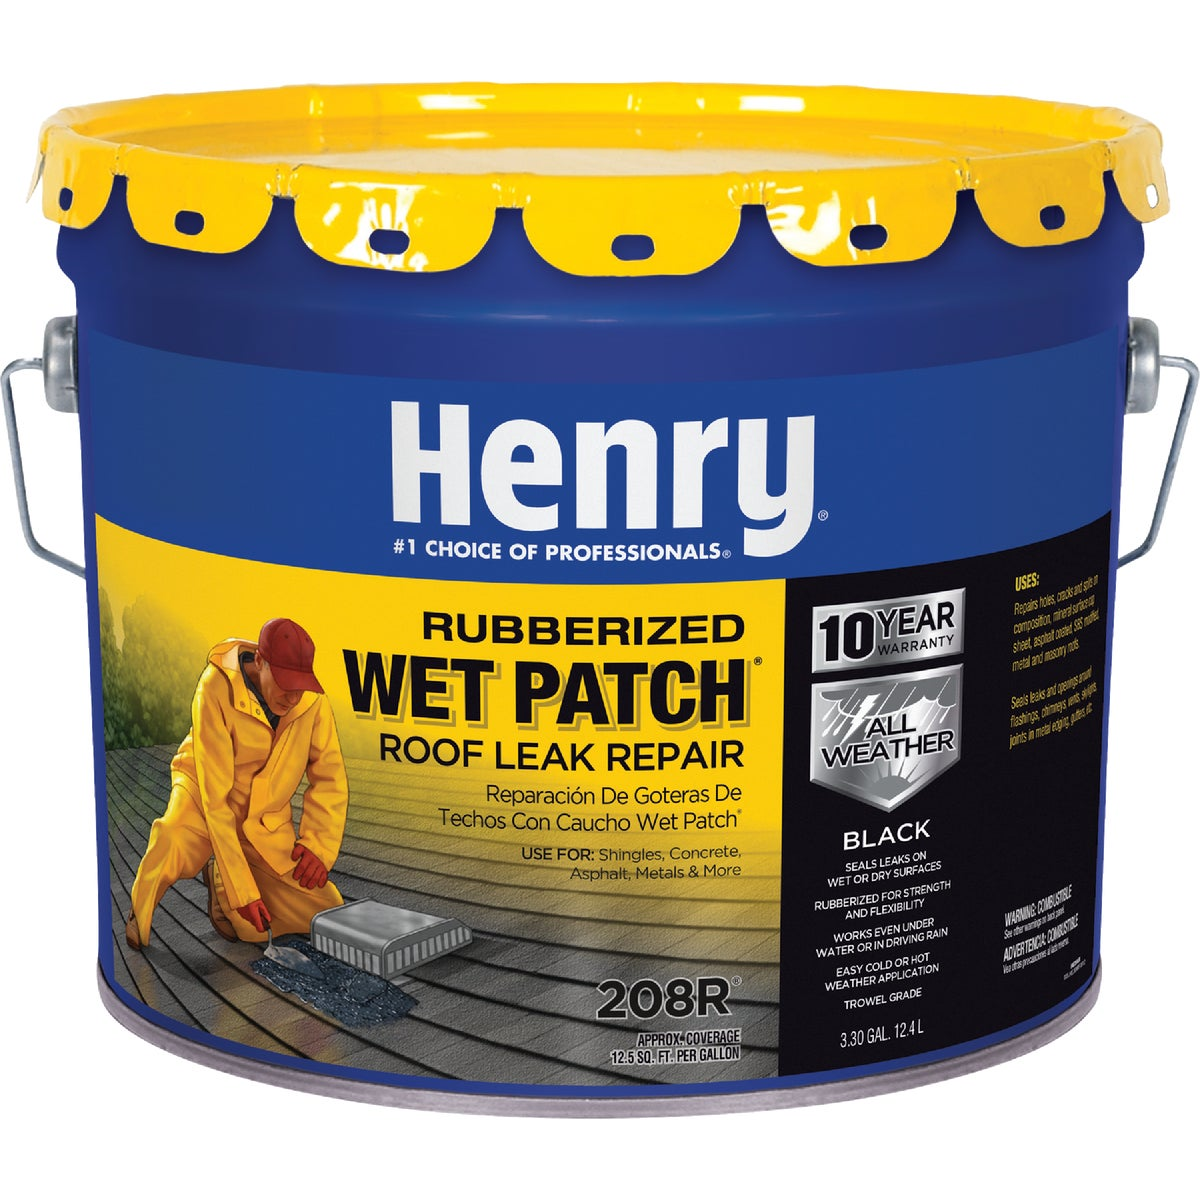 3.5GL RB WET PTCH CEMENT - HE208R061 by Henry Company